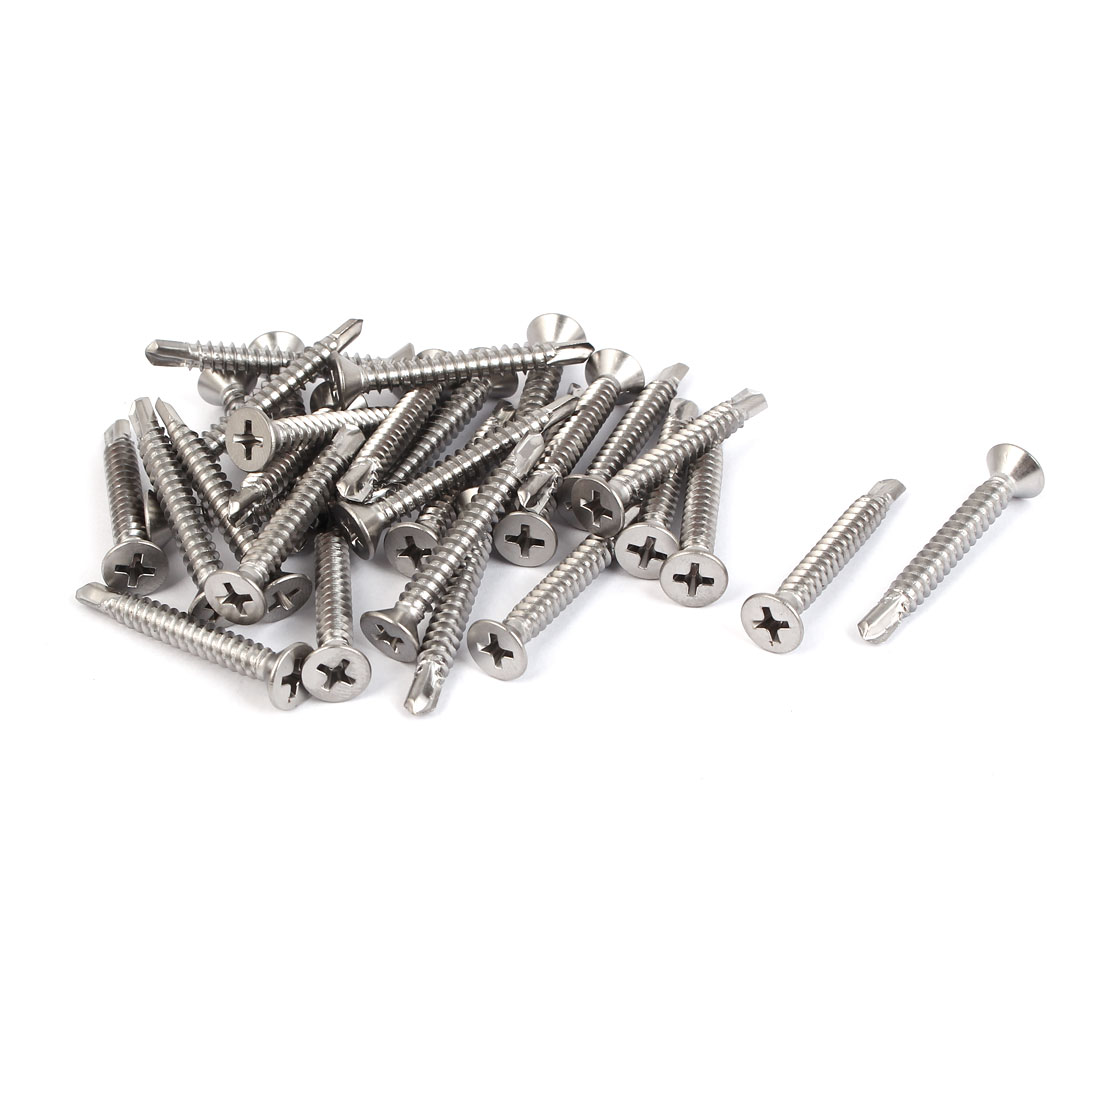 M4.8x38mm #10 Thread 410 Stainless Steel Self Drilling Countersunk Head Screws 30 Pcs